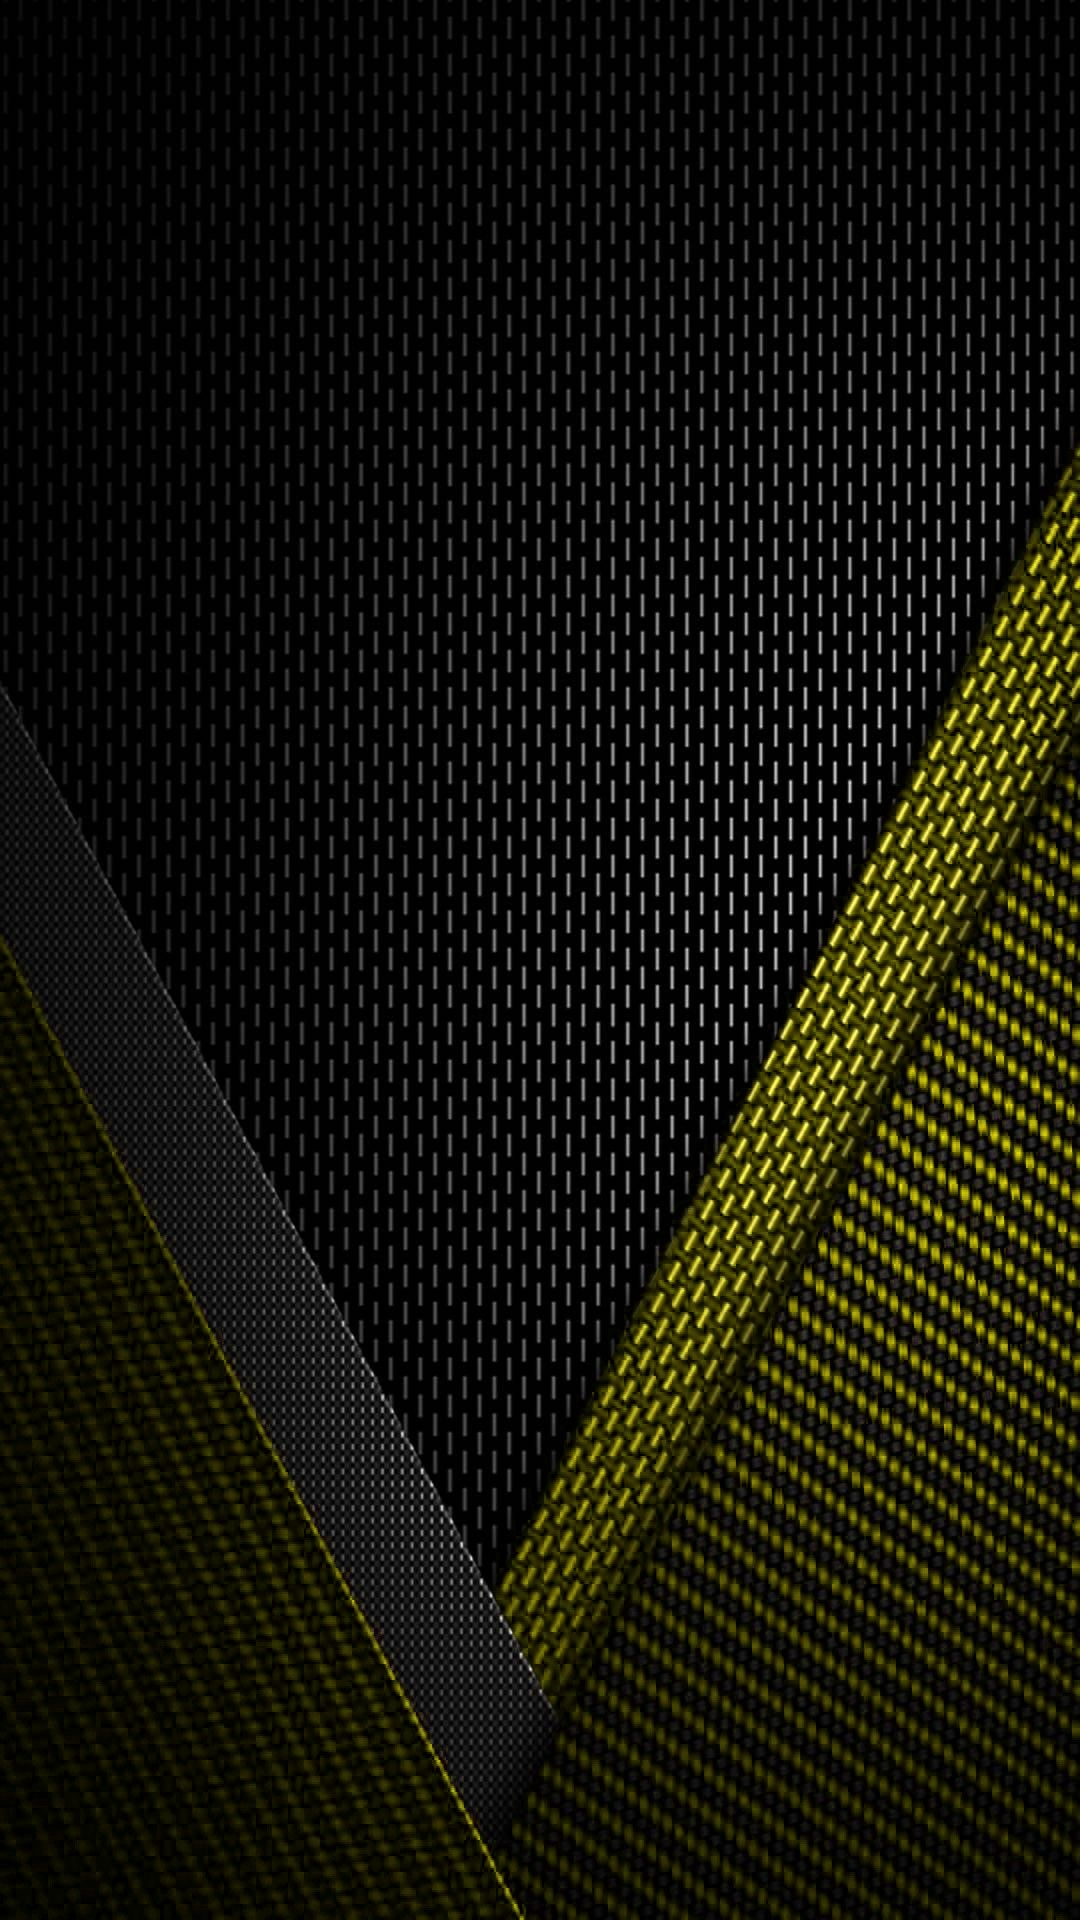 Black And Yellow Textured Wallpaper Yellow Textures Black Textured Wallpaper Black Wallpaper